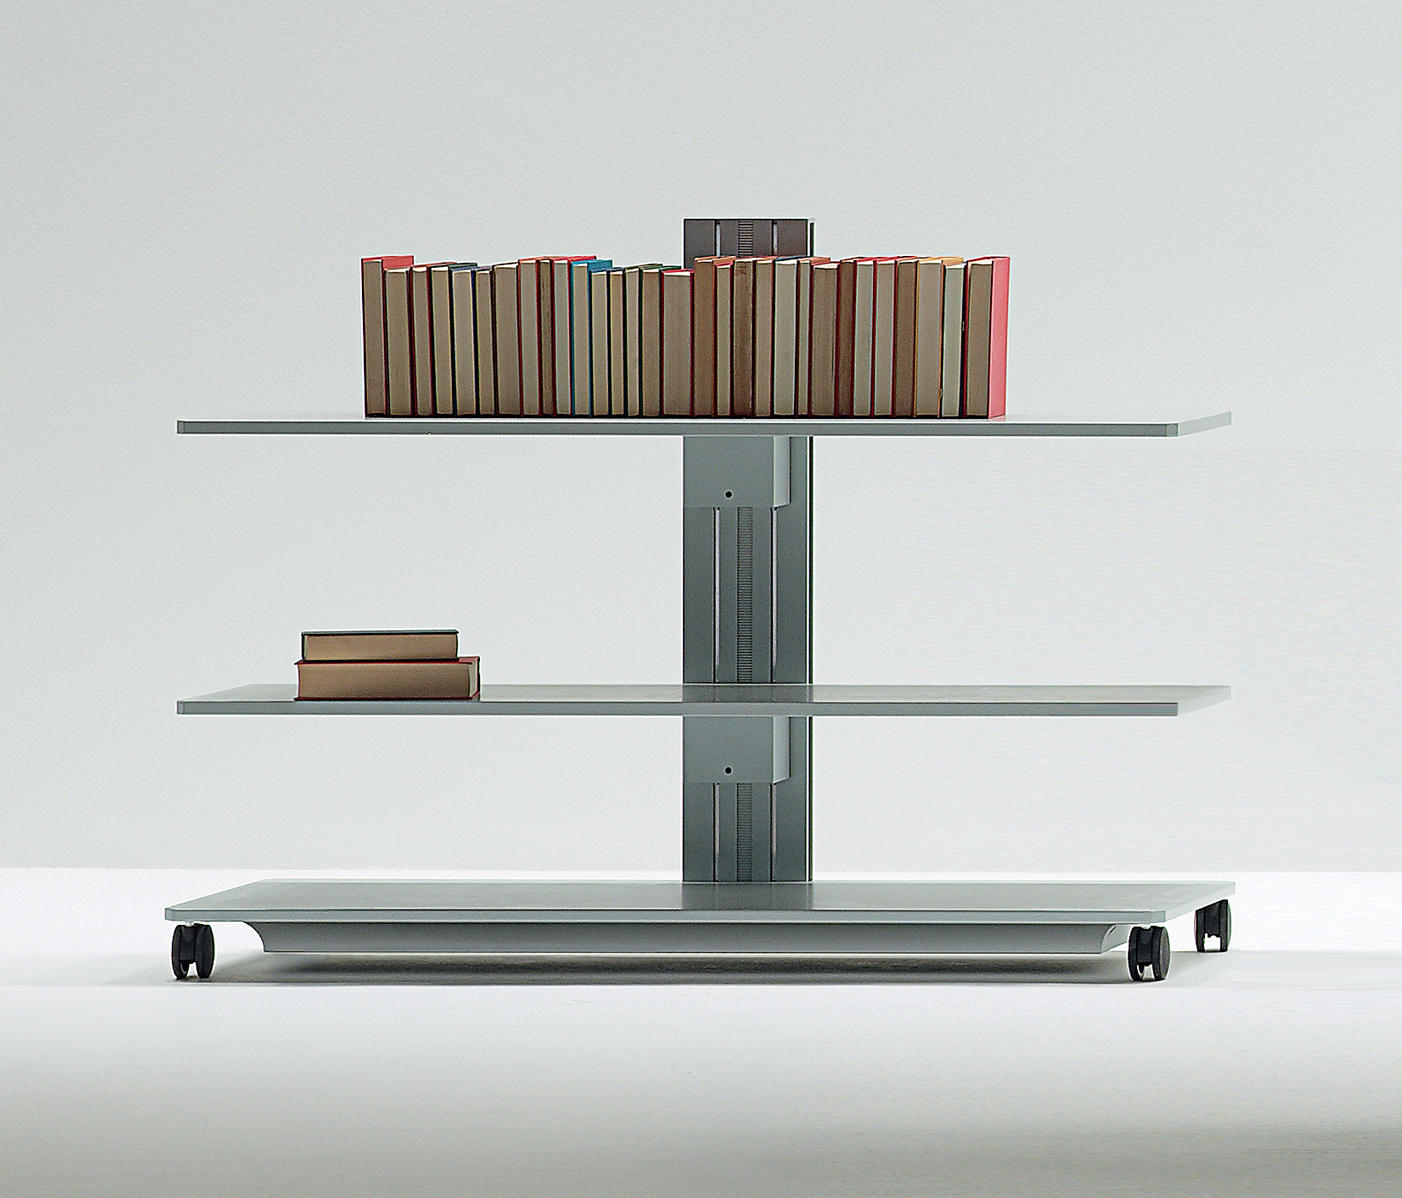 Service tables carts from unifor architonic for Unifor turate